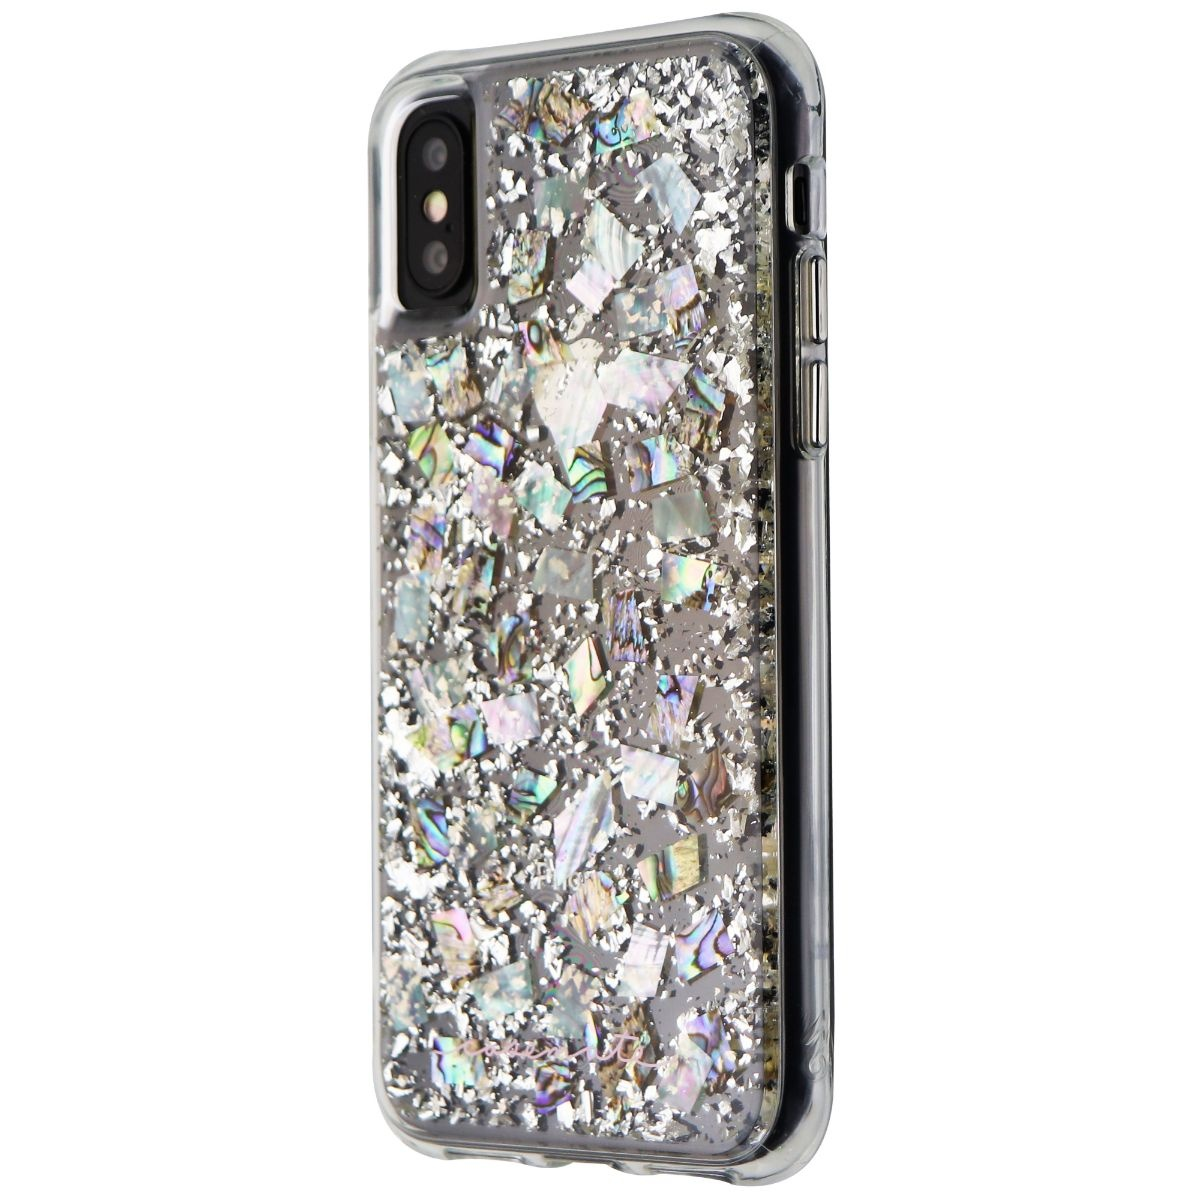 Case-Mate Karat Pearl Series Case for Apple iPhone XS/X - Clear/Pearl Flakes